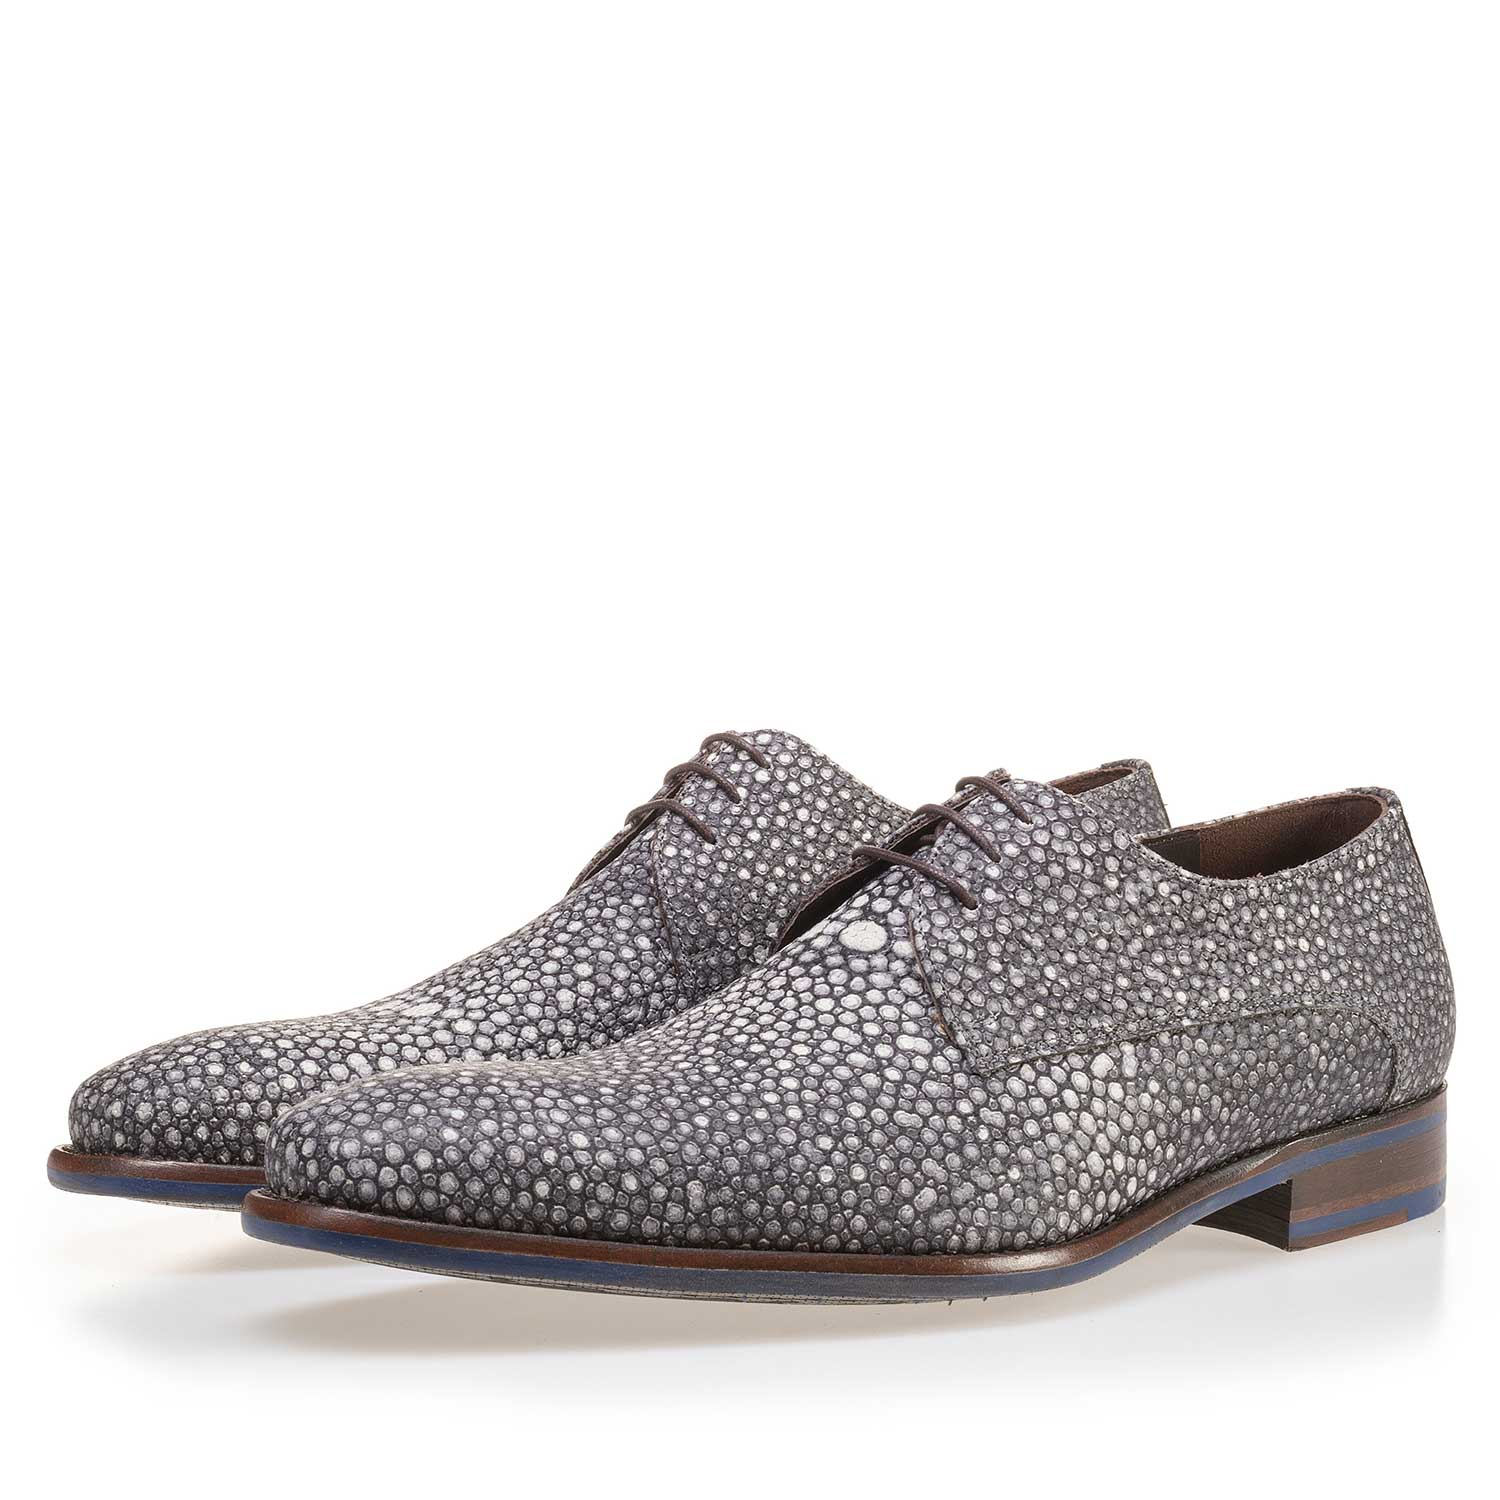 14194/01 - Grey leather lace shoe with pattern